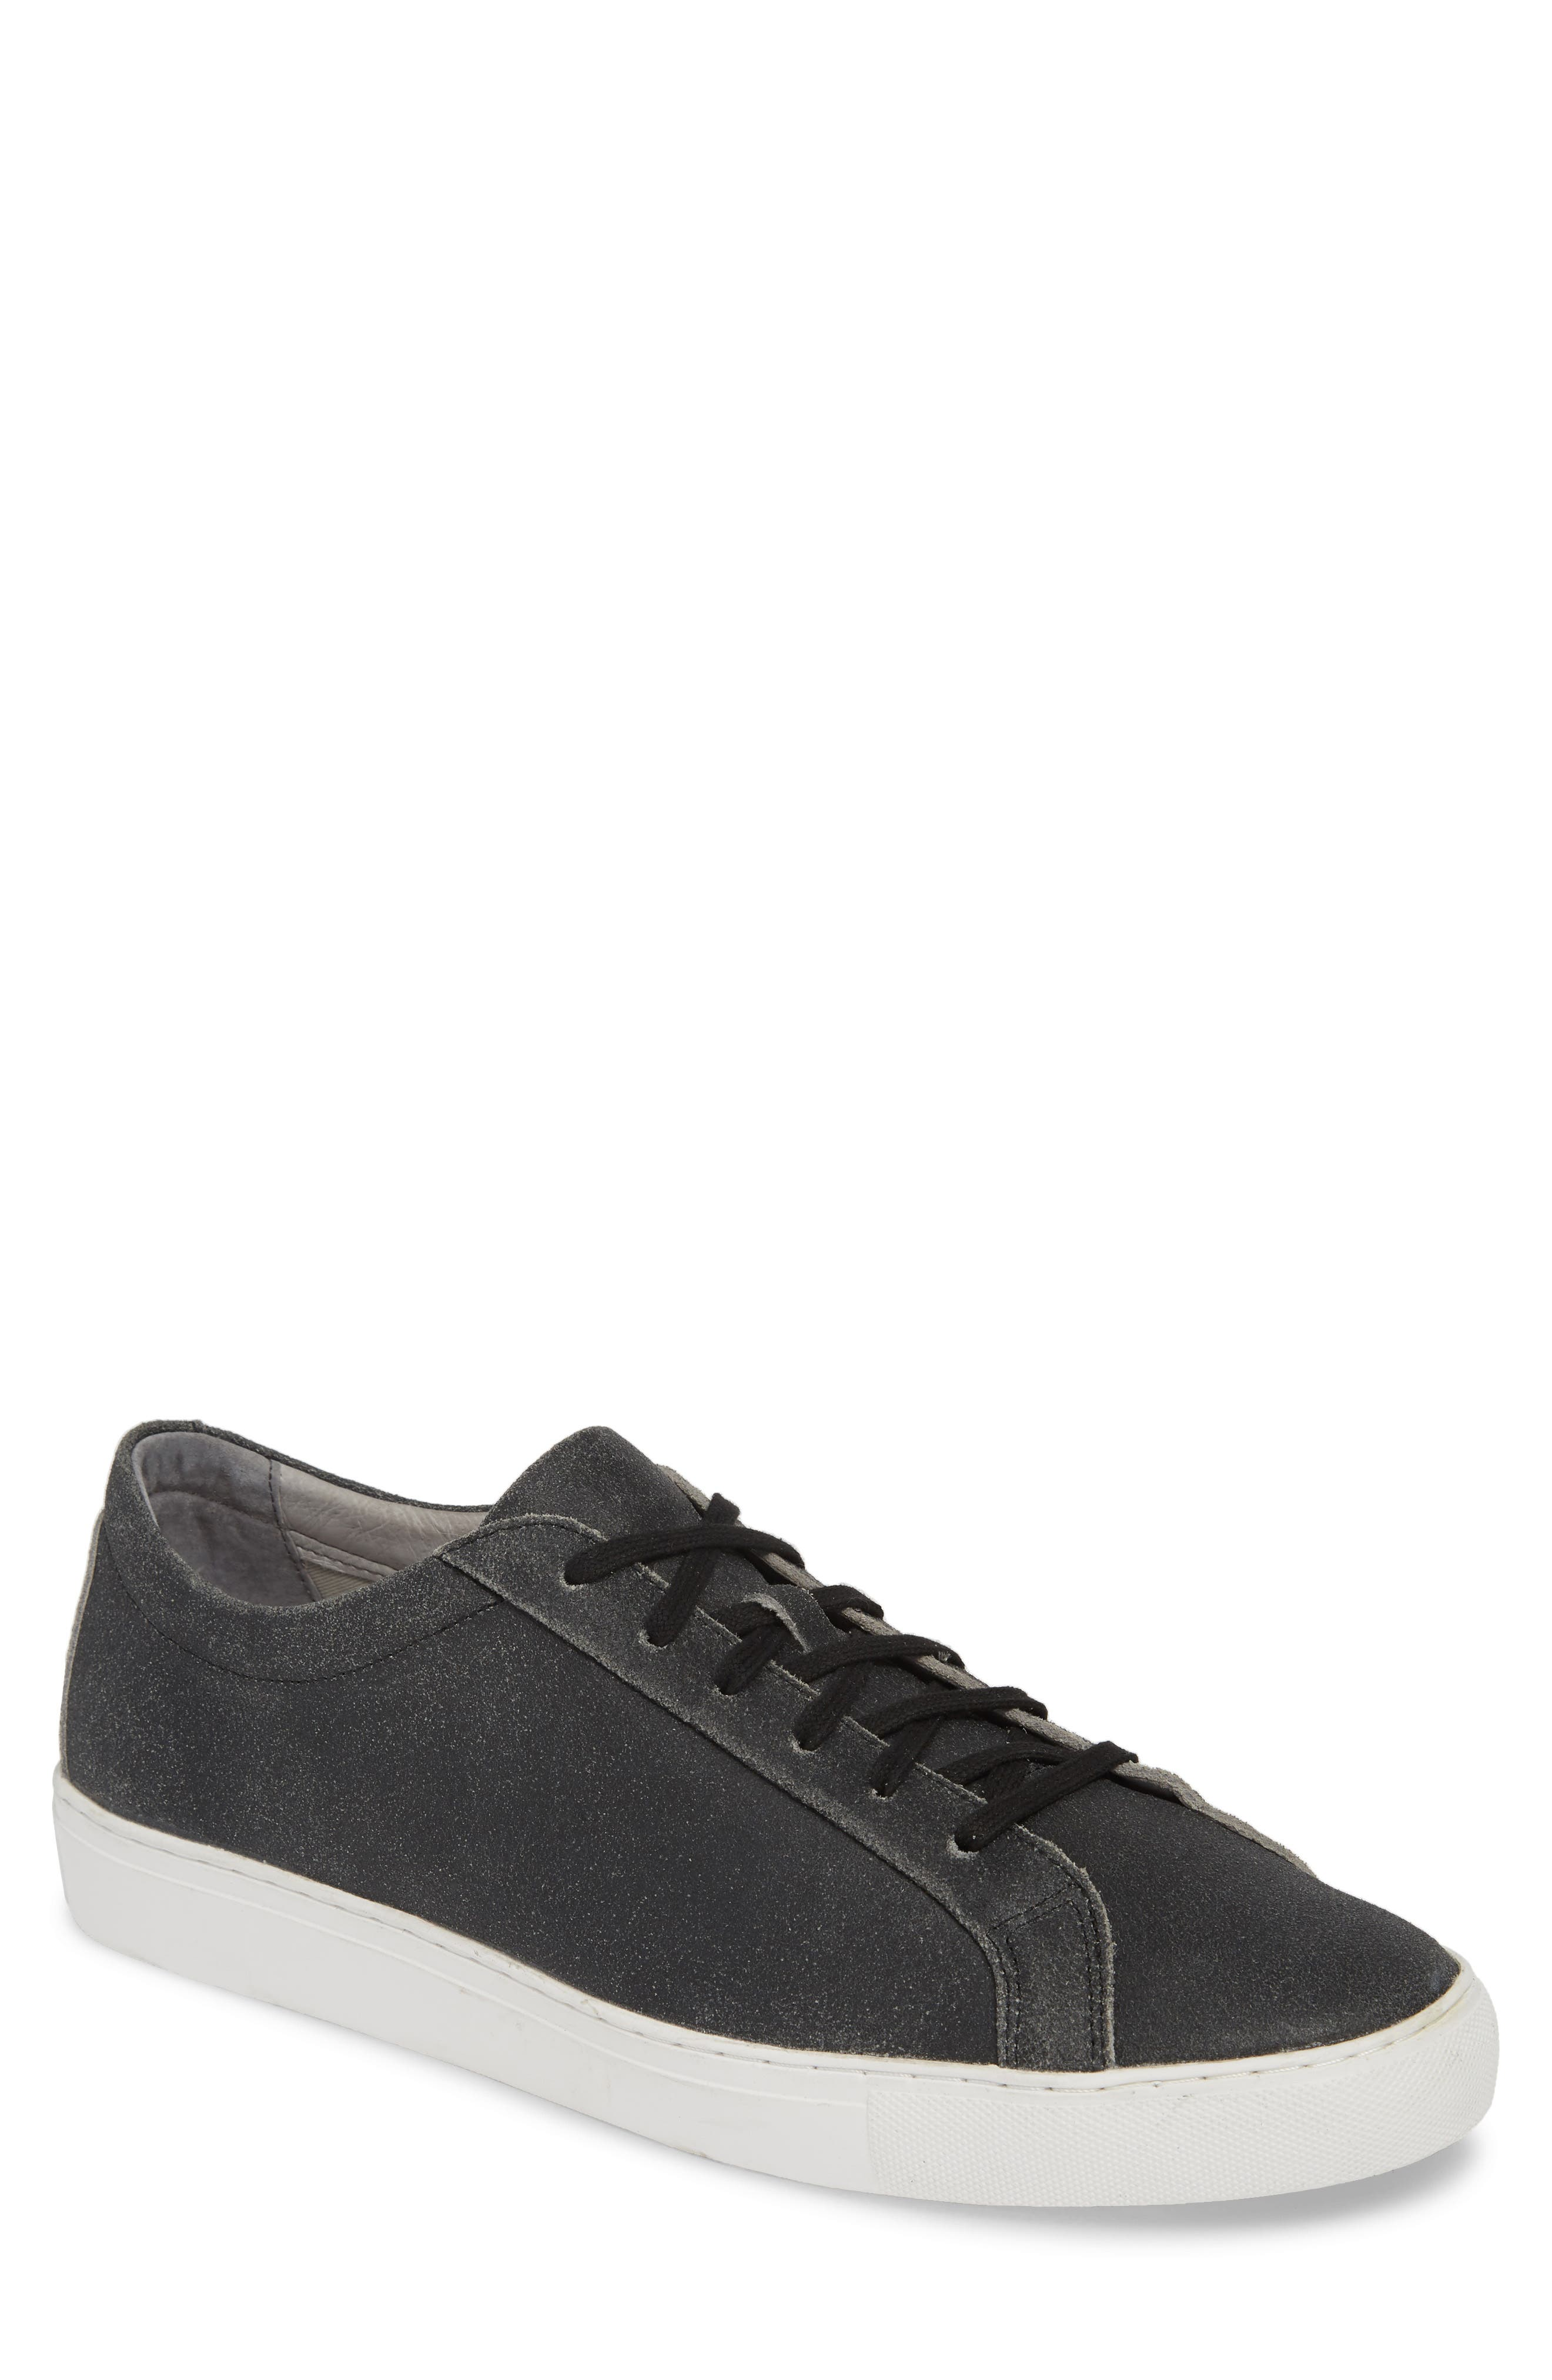 TCG Kennedy Low Top Sneaker, Main, color, CRACKED BLACK LEATHER